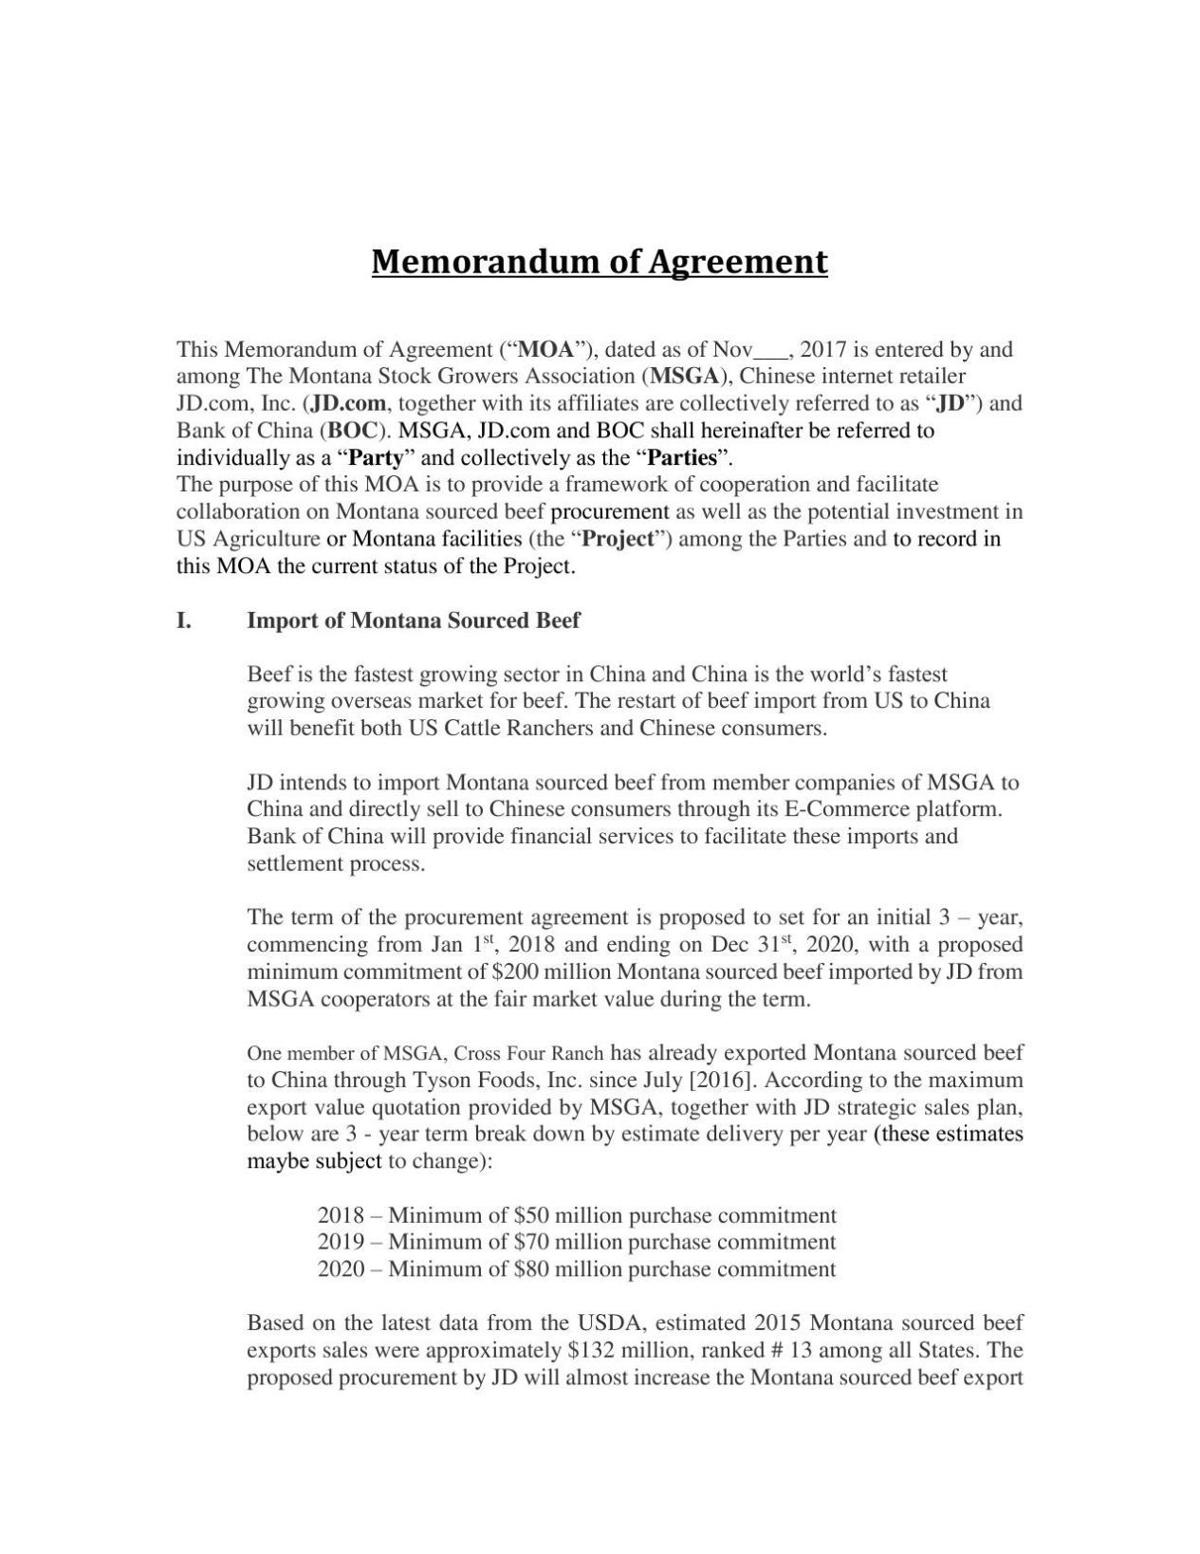 Stockgrowers agreement with JD.com